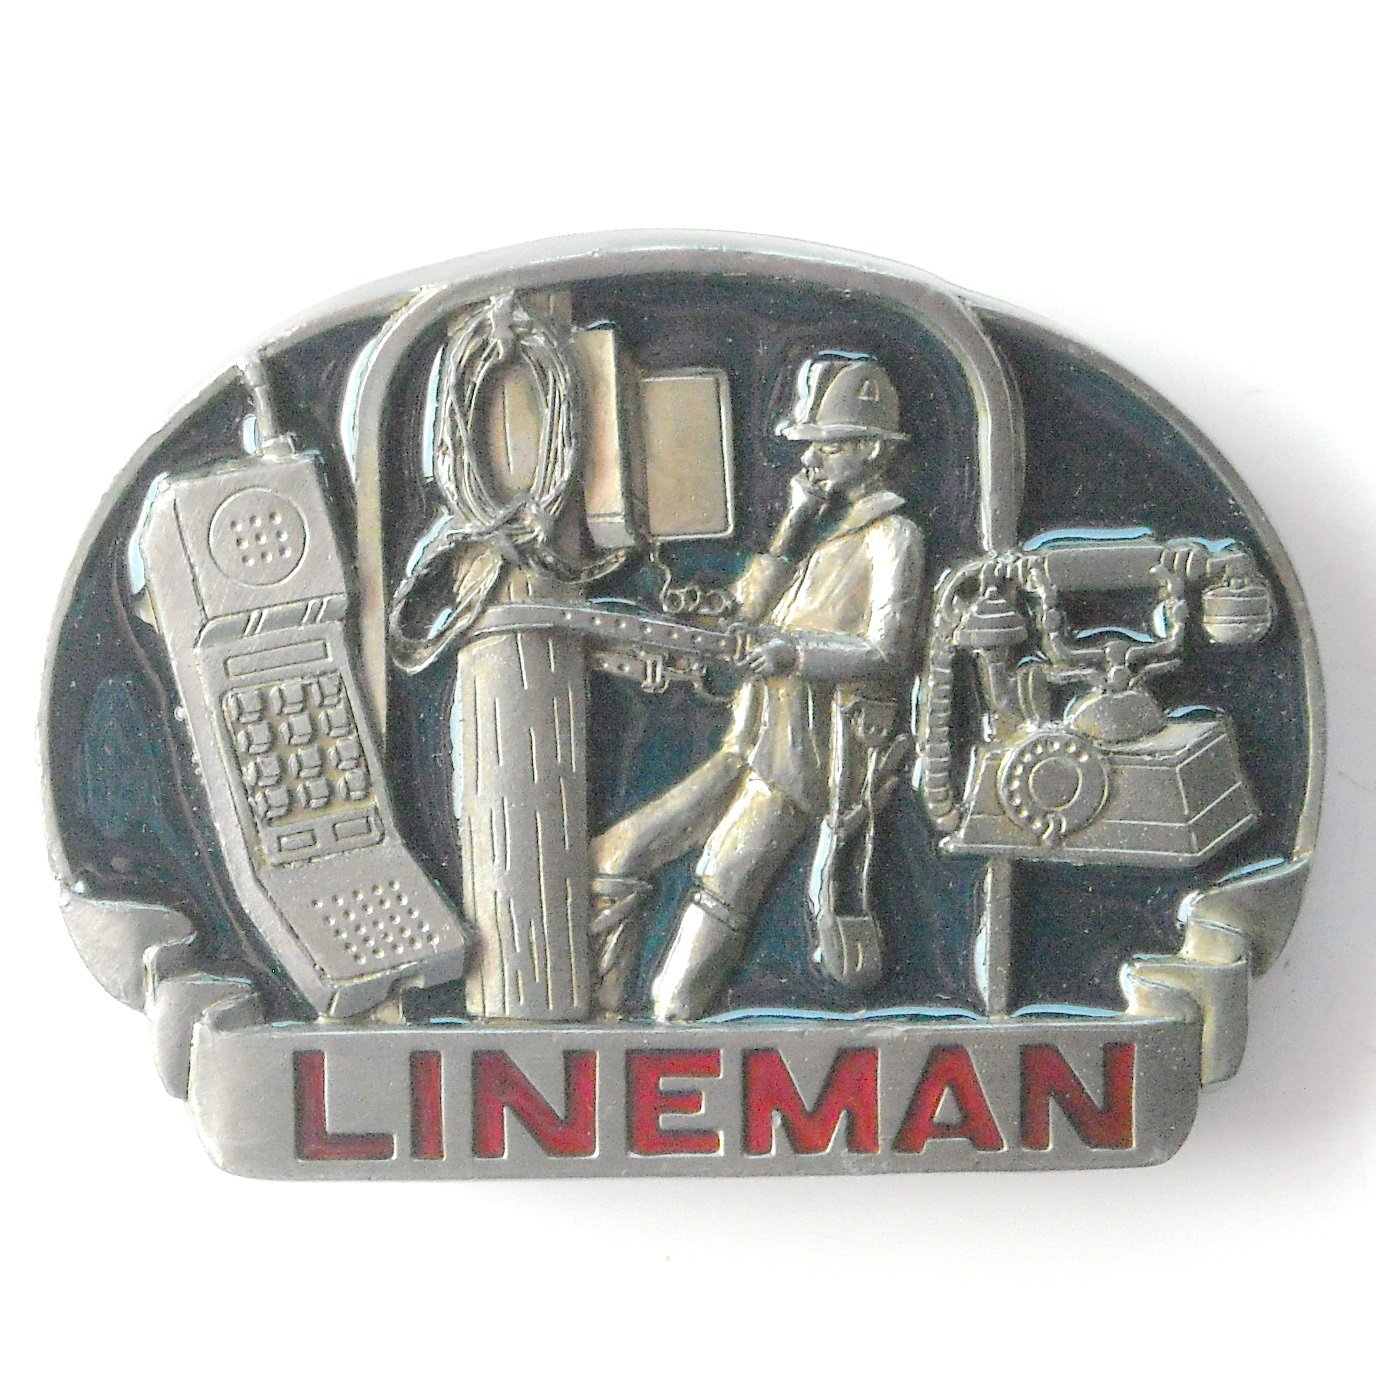 Lineman Phone C+J 1993 C&J Inc pewter alloy belt buckle